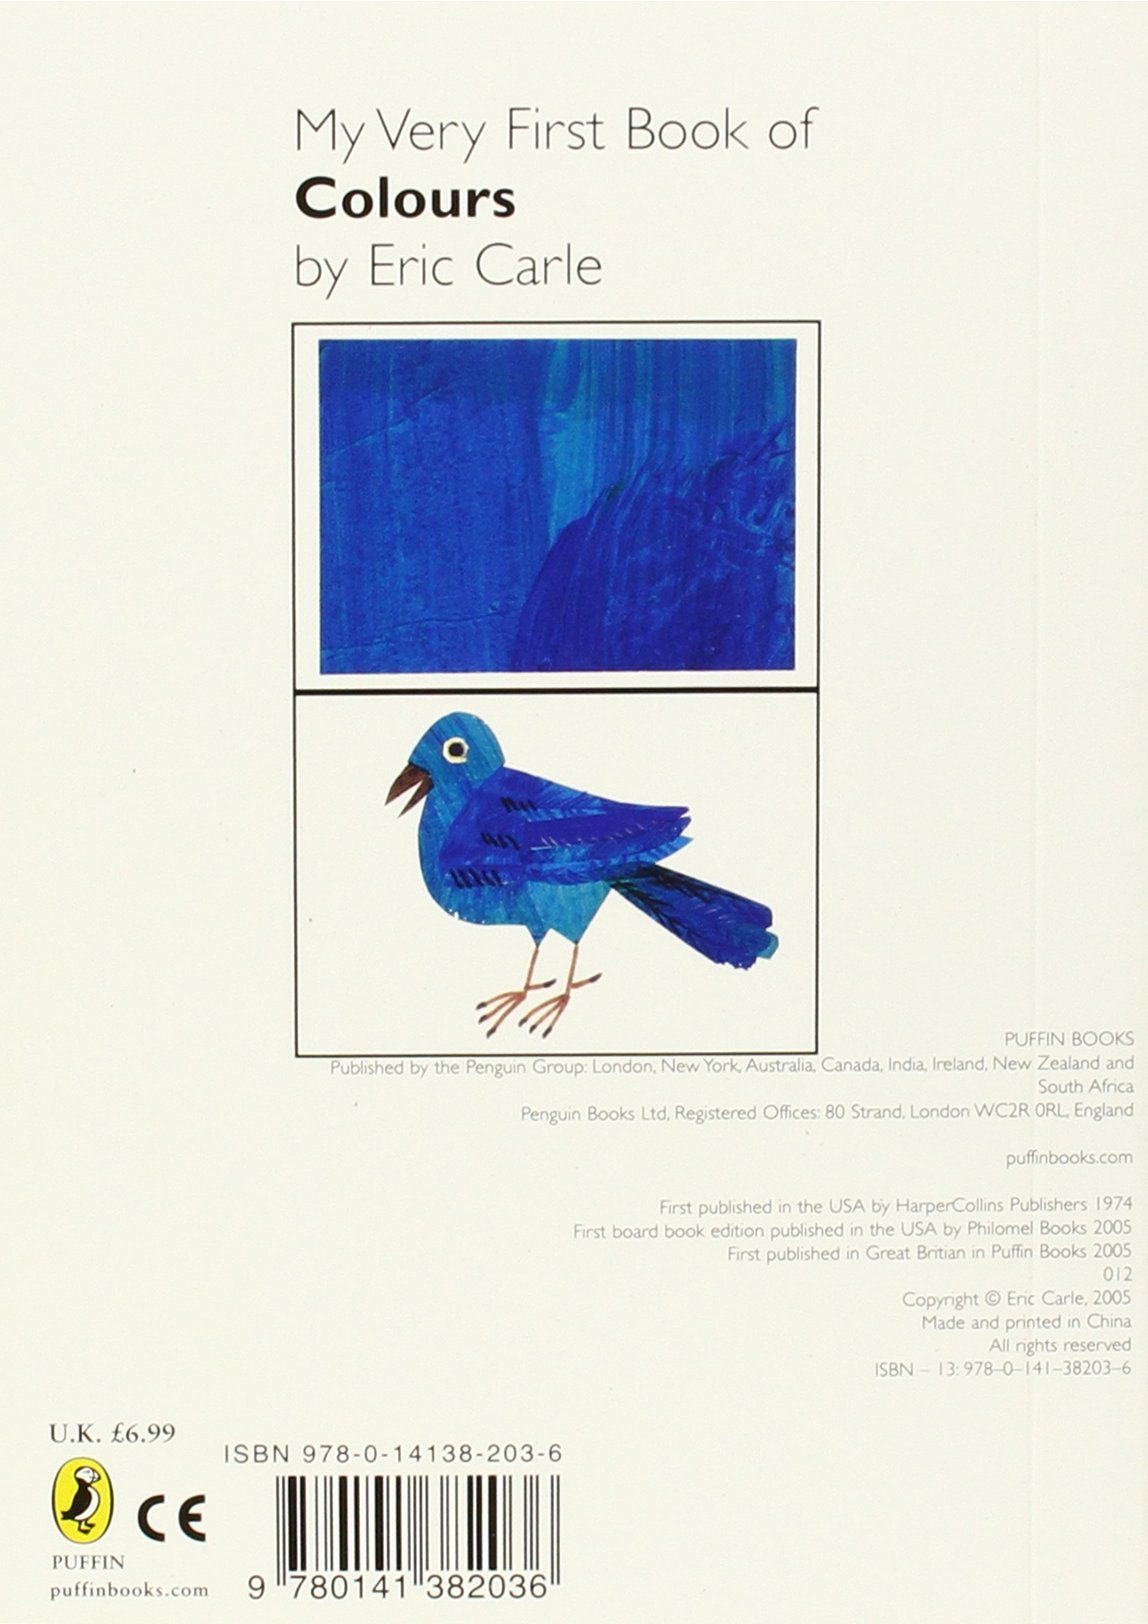 My Very First Book of Colours: Eric Carle: 9780141382036: Amazon.com ...